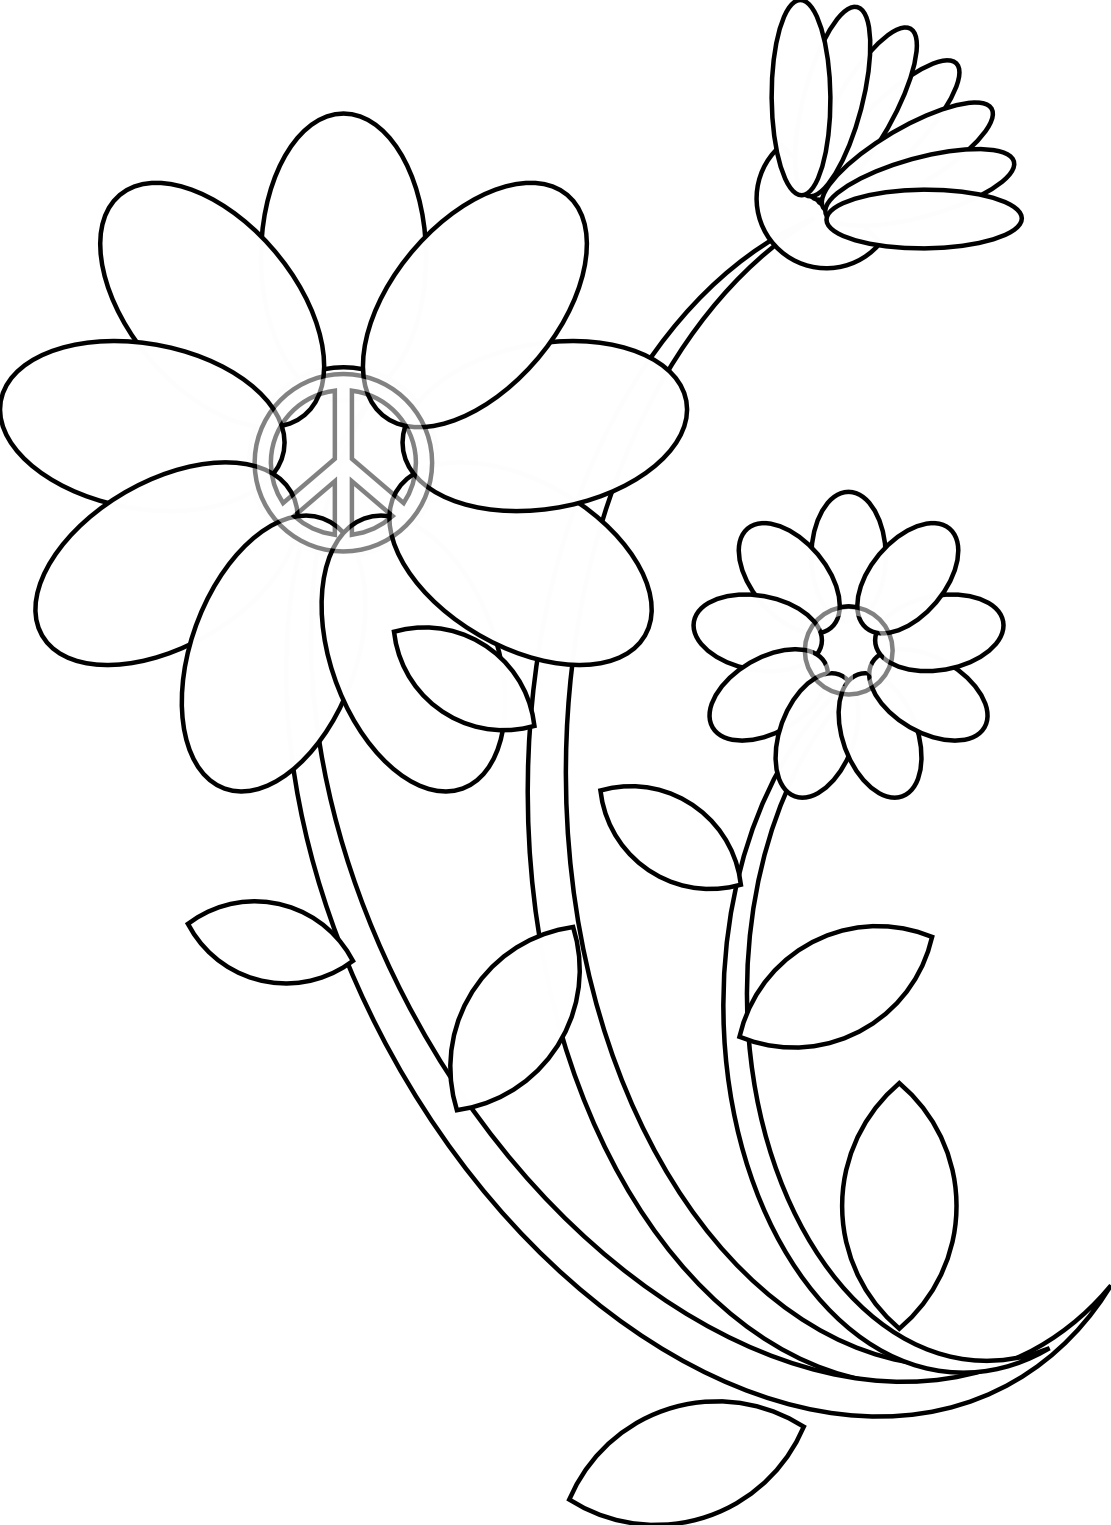 Flower Line Drawing Icon : Image gallery line drawings of flowers